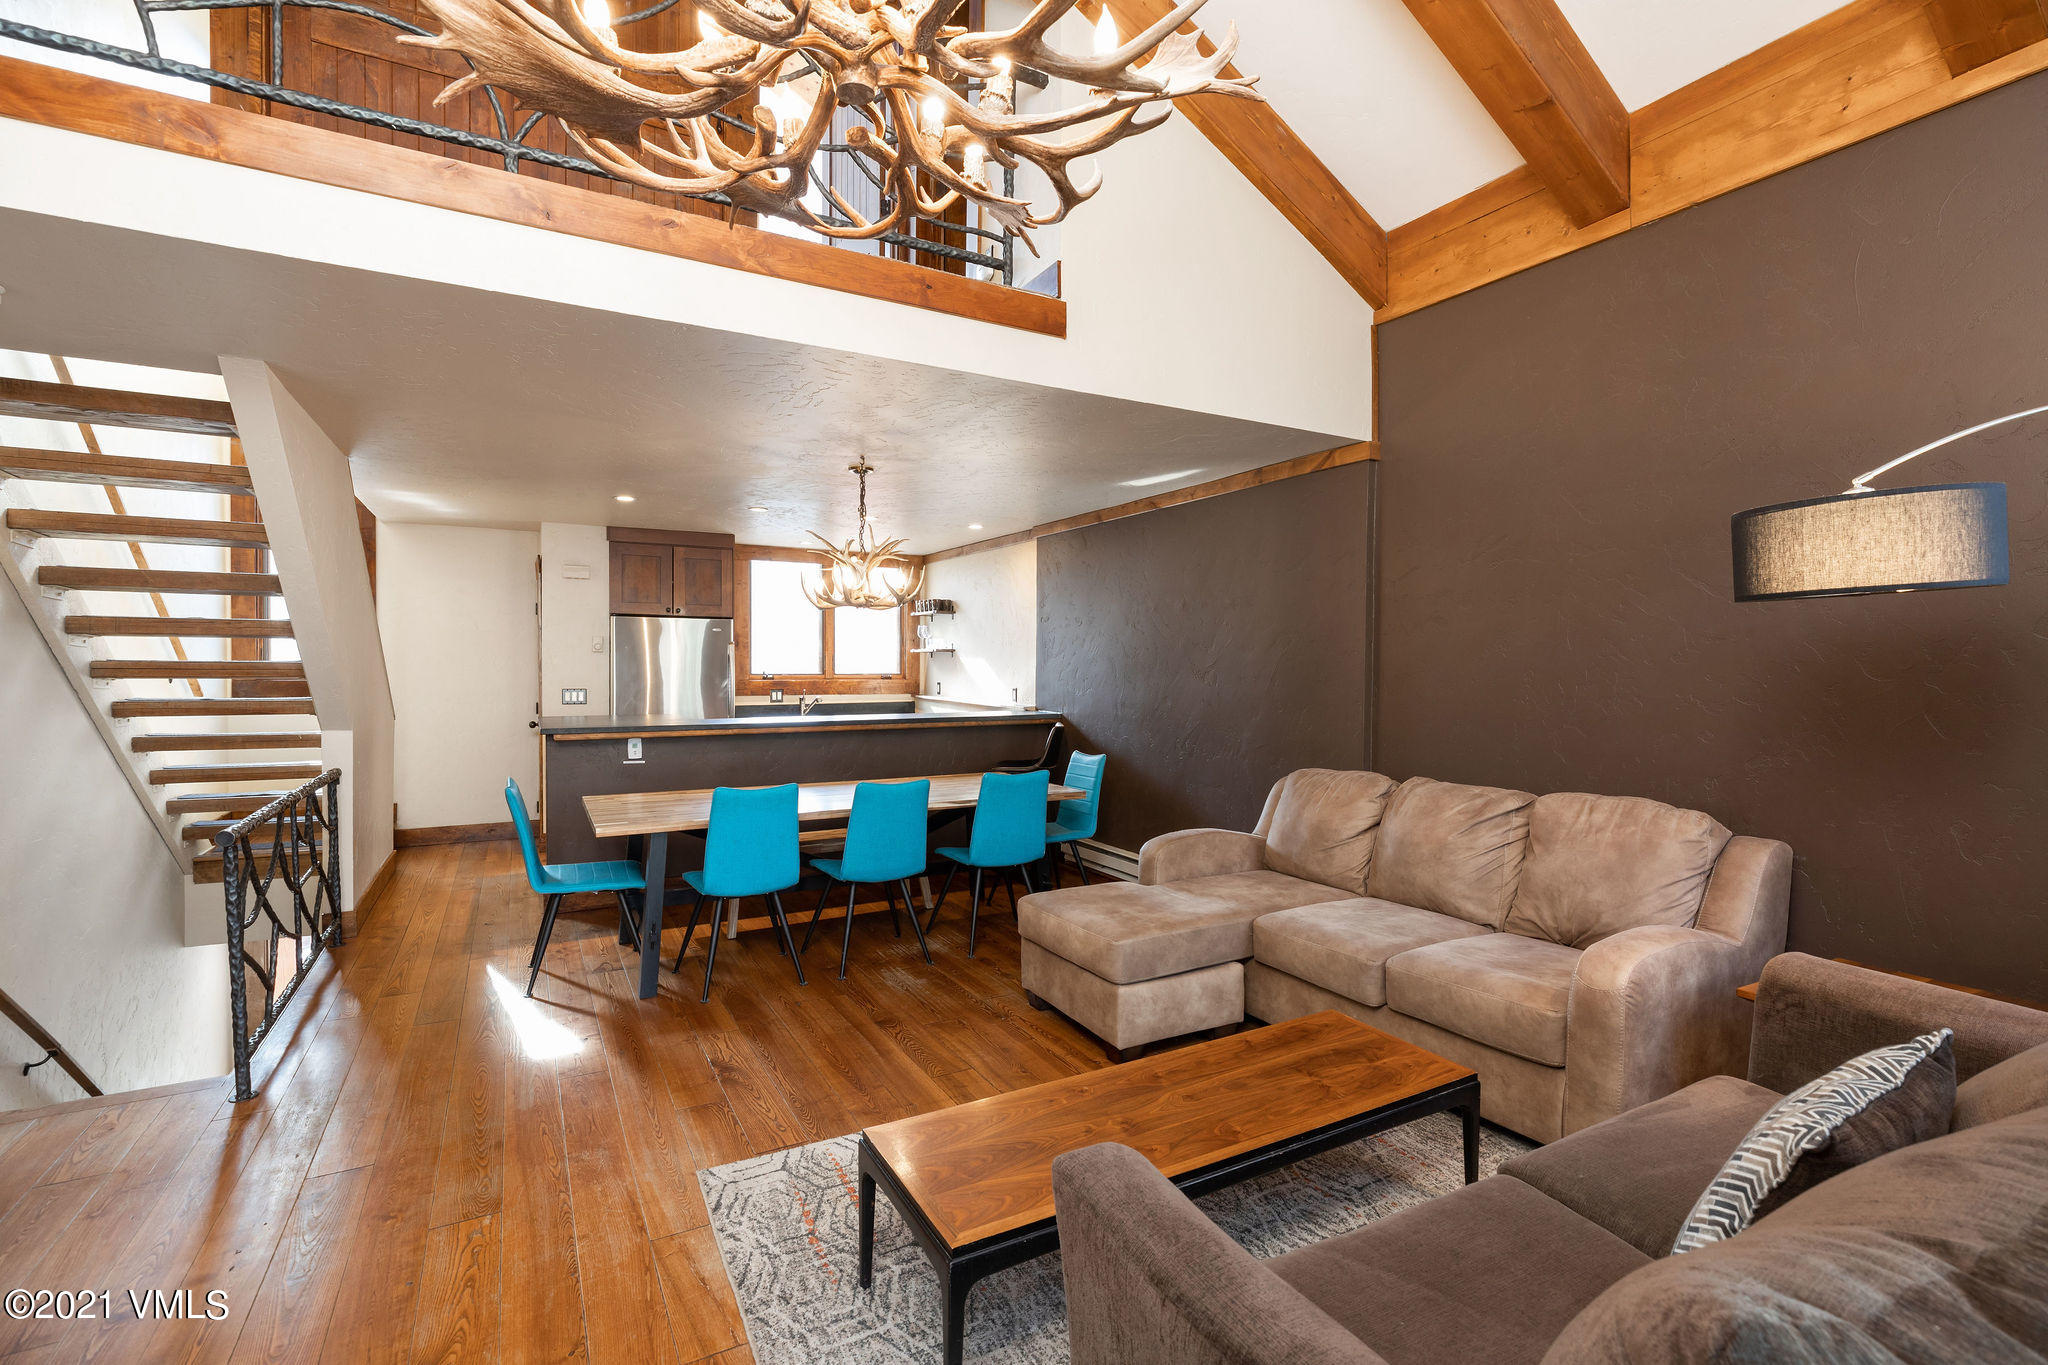 This nicely-updated 3 bedroom residence is absolutely perfect as a Front Range getaway or as your full time residence. Located on the sunny side of the valley, you'll enjoy views from the Gore Range to the ski slopes of Vail. Only five minutes to Vail Village, and a quick stroll to the popular Booth Falls Trailhead, Vail bike path, and a Town of Vail bus stop. Two covered decks.  Tons of private storage for your bikes, skis and other mountain toys. Come see this one now, as it will go quickly!